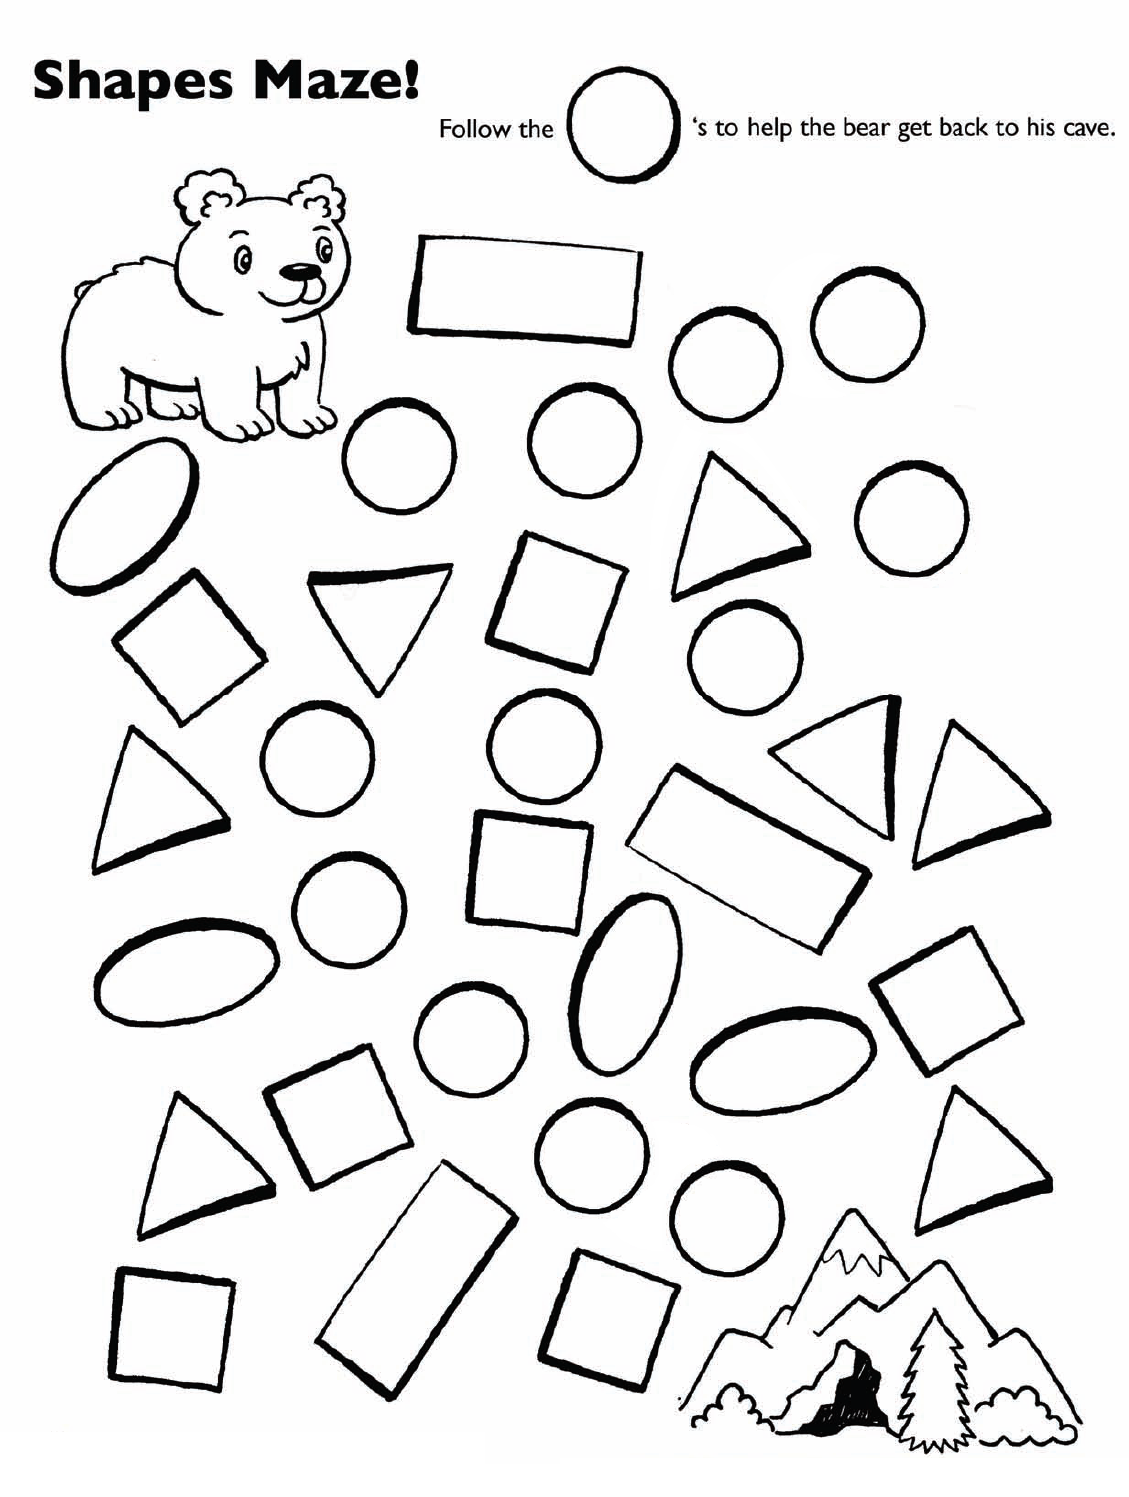 Follow the circles bear shape maze | Teddy Bear Theme Printables ...